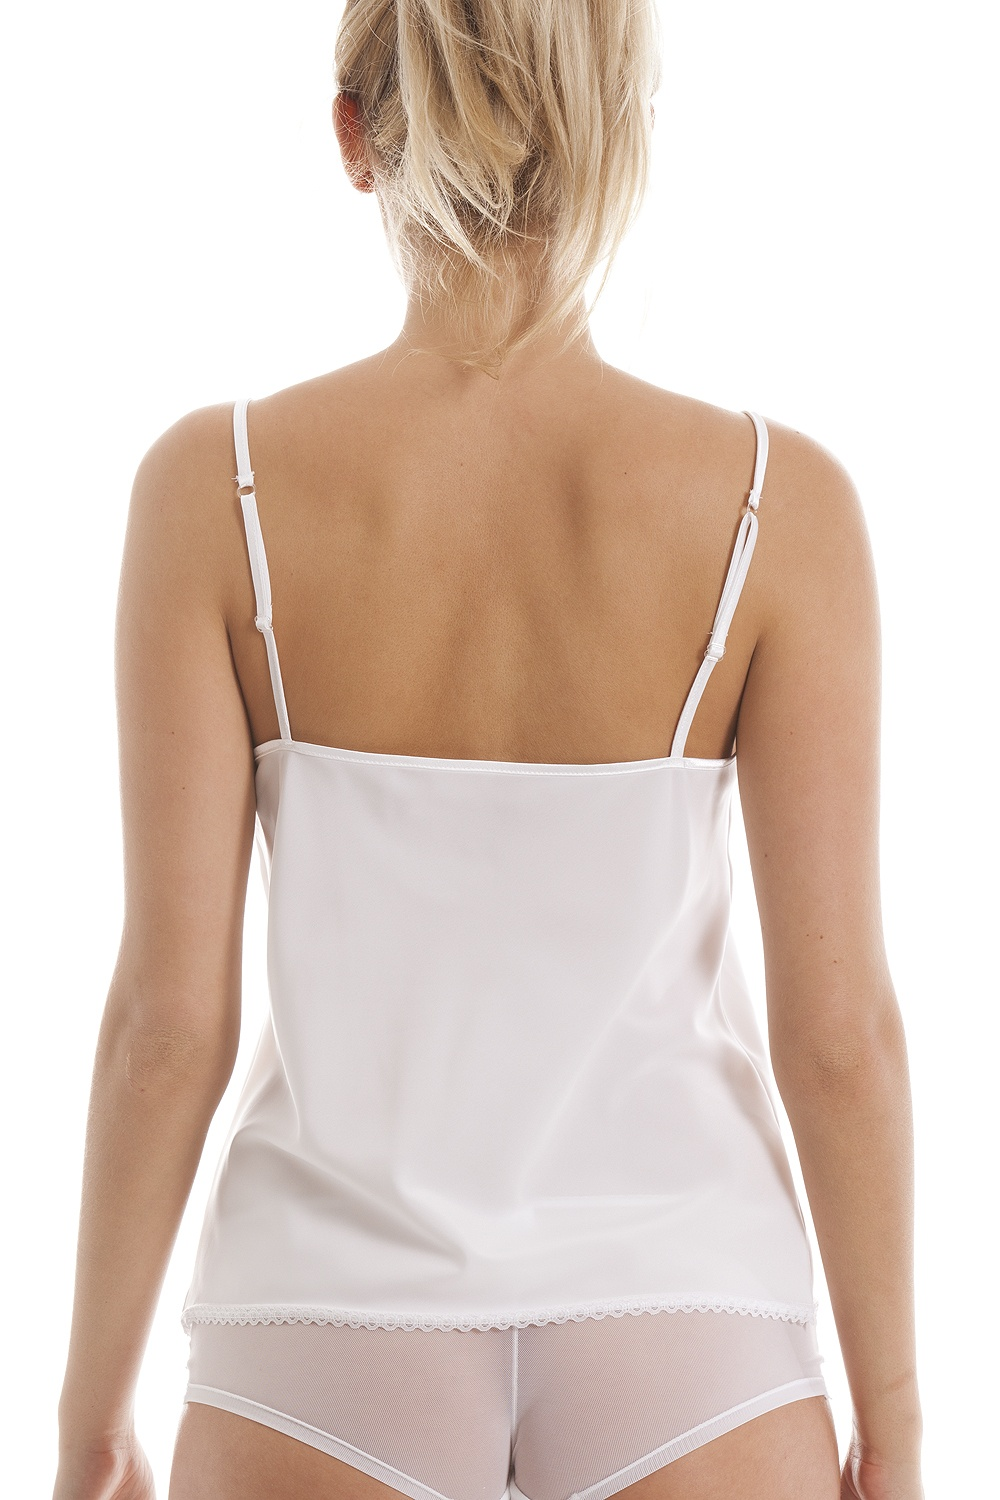 A white cami top or black cami top could be worn together, giving a dual-layered look, or could be worn with other tops with low v-necks of contrasting colors. A red tank top is another